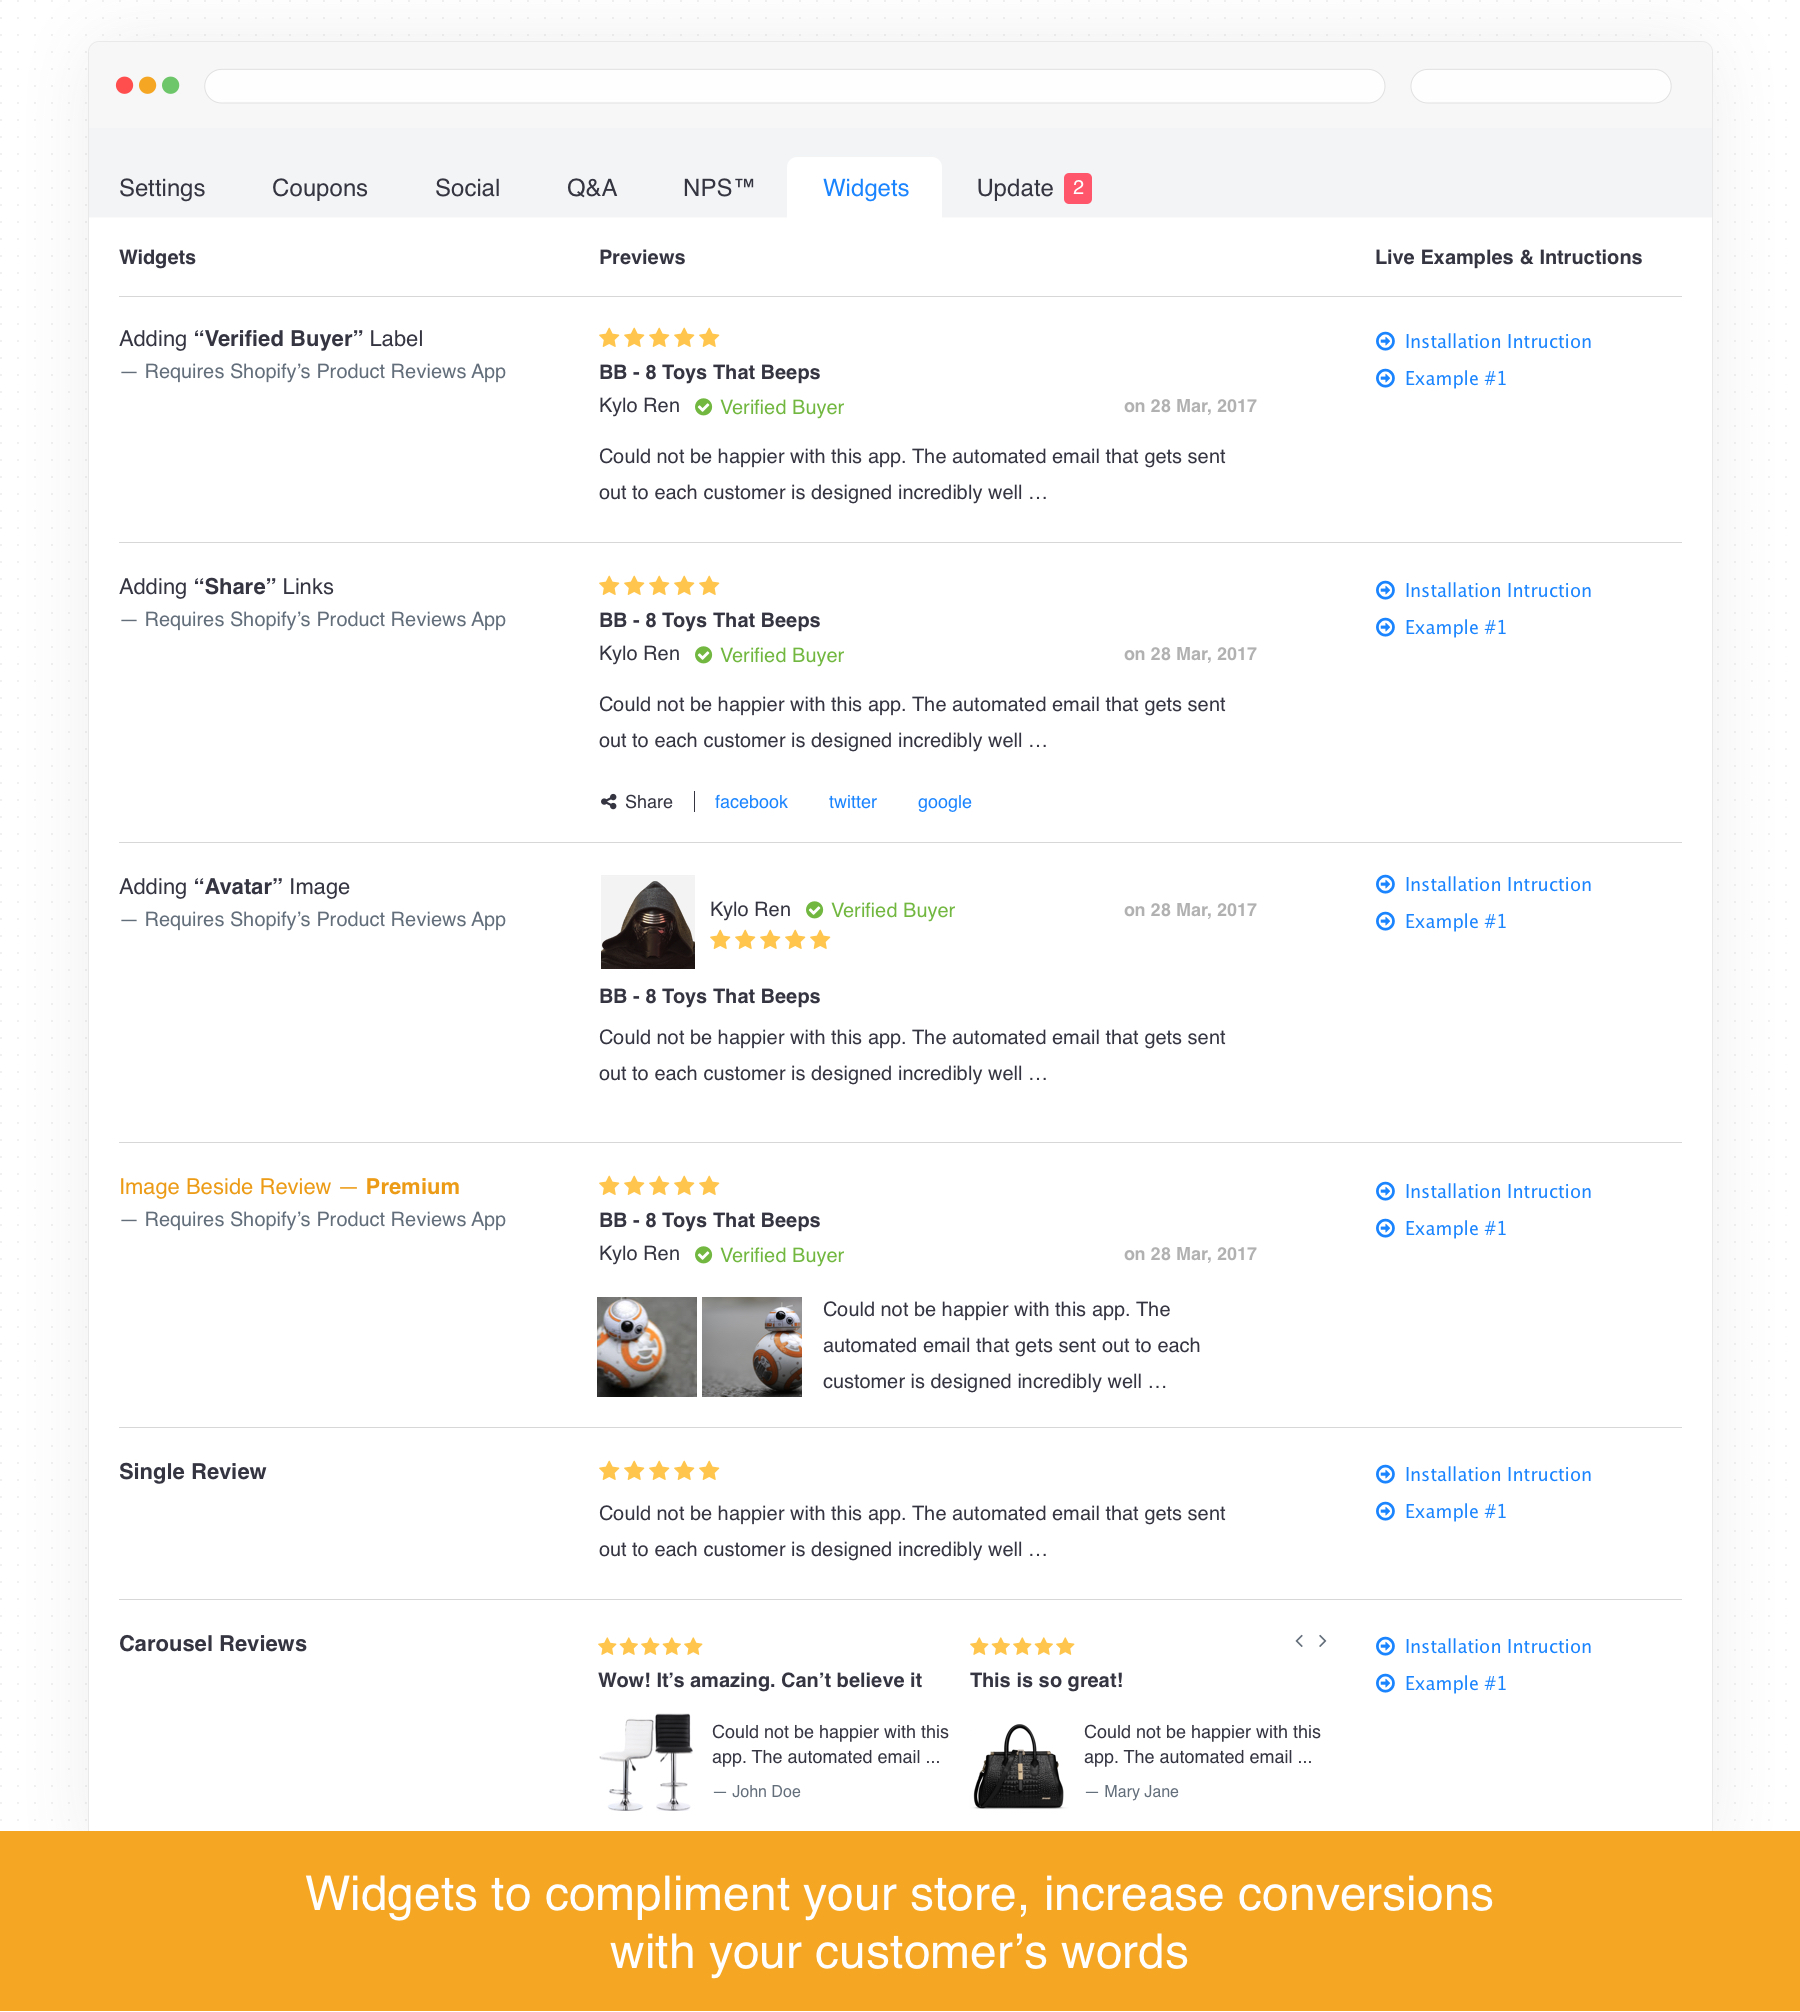 product reviews addon ecommerce plugins for online stores large thumb thumb thumb